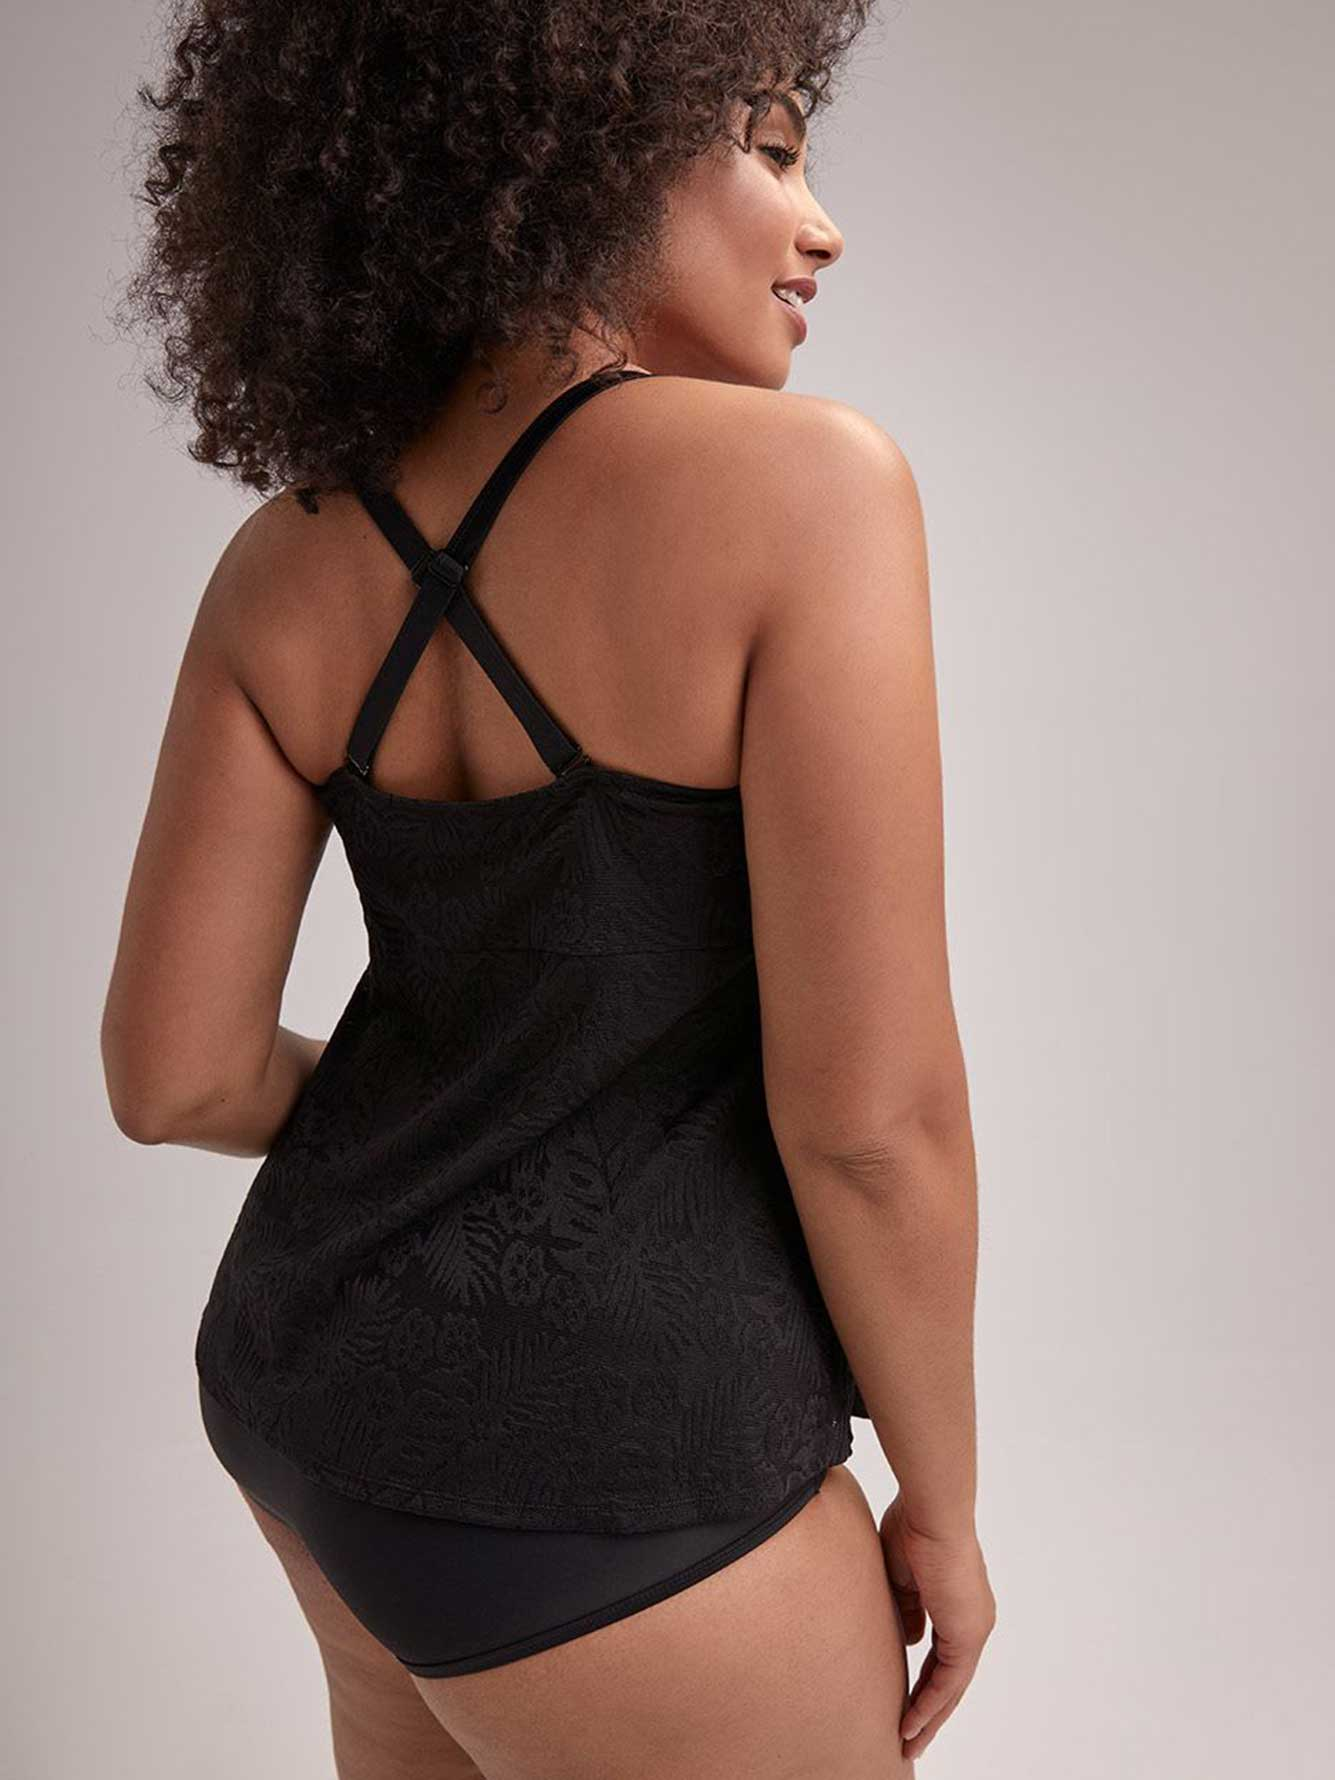 Tankini Top with Removable Straps - Cactus